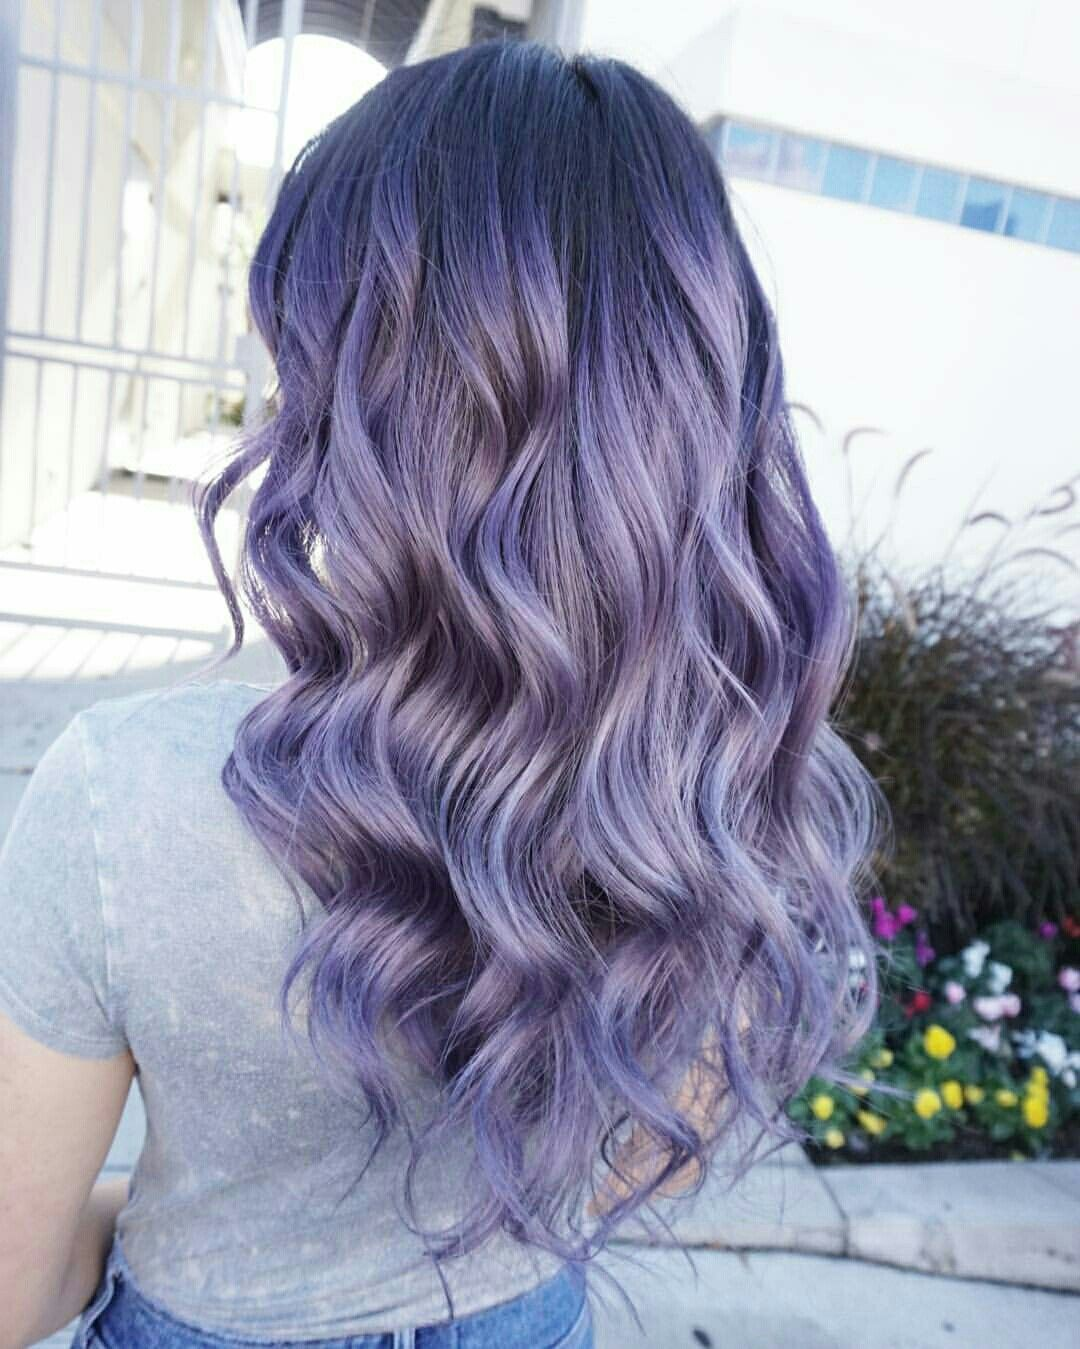 Pin By Alia M On Dyed Hair Lilac Hair Hair Styles Lilac Hair Color